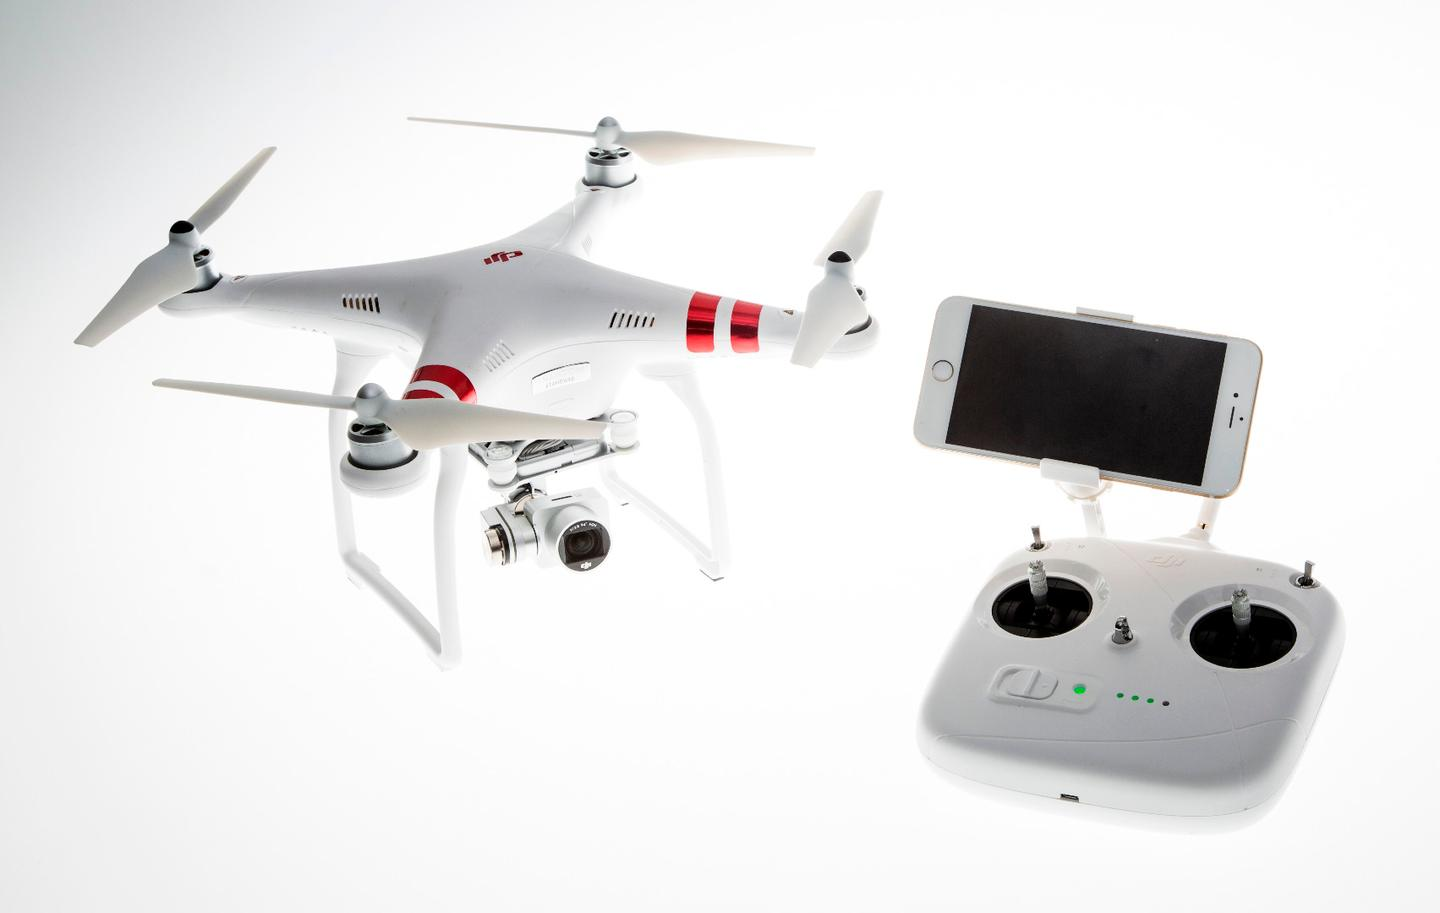 The new DJI Phantom 3 Standard, with its included controller